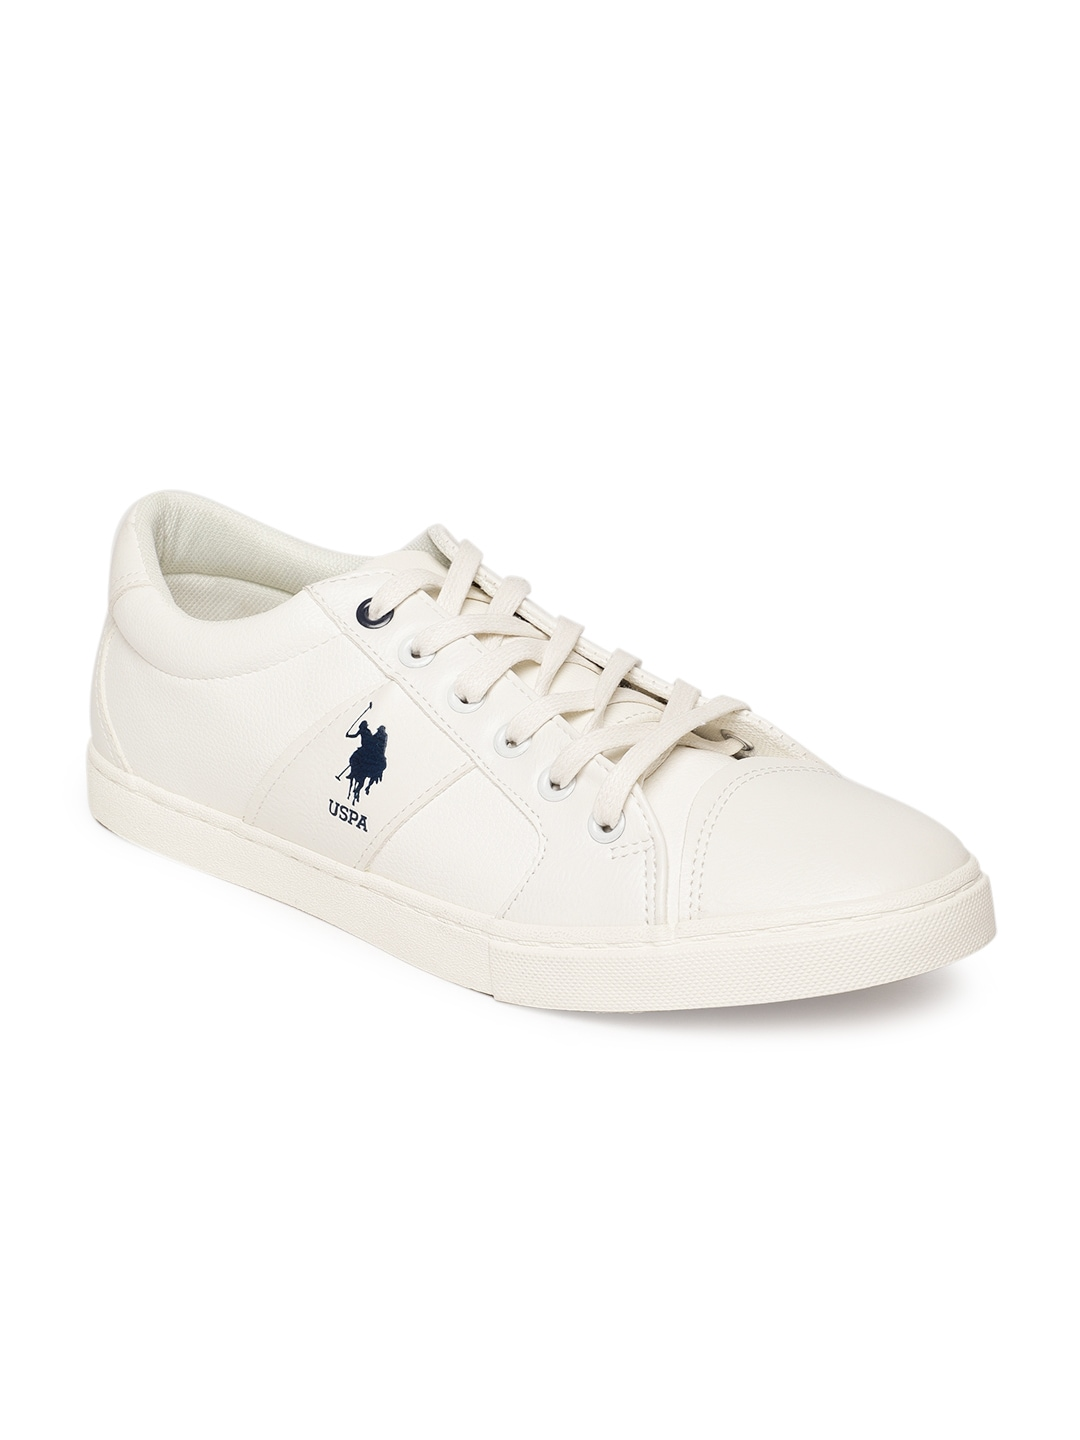 503a9e072bc5 U.S. Polo Assn. Casual Shoes - Buy U.S. Polo Assn. Casual Shoes Online